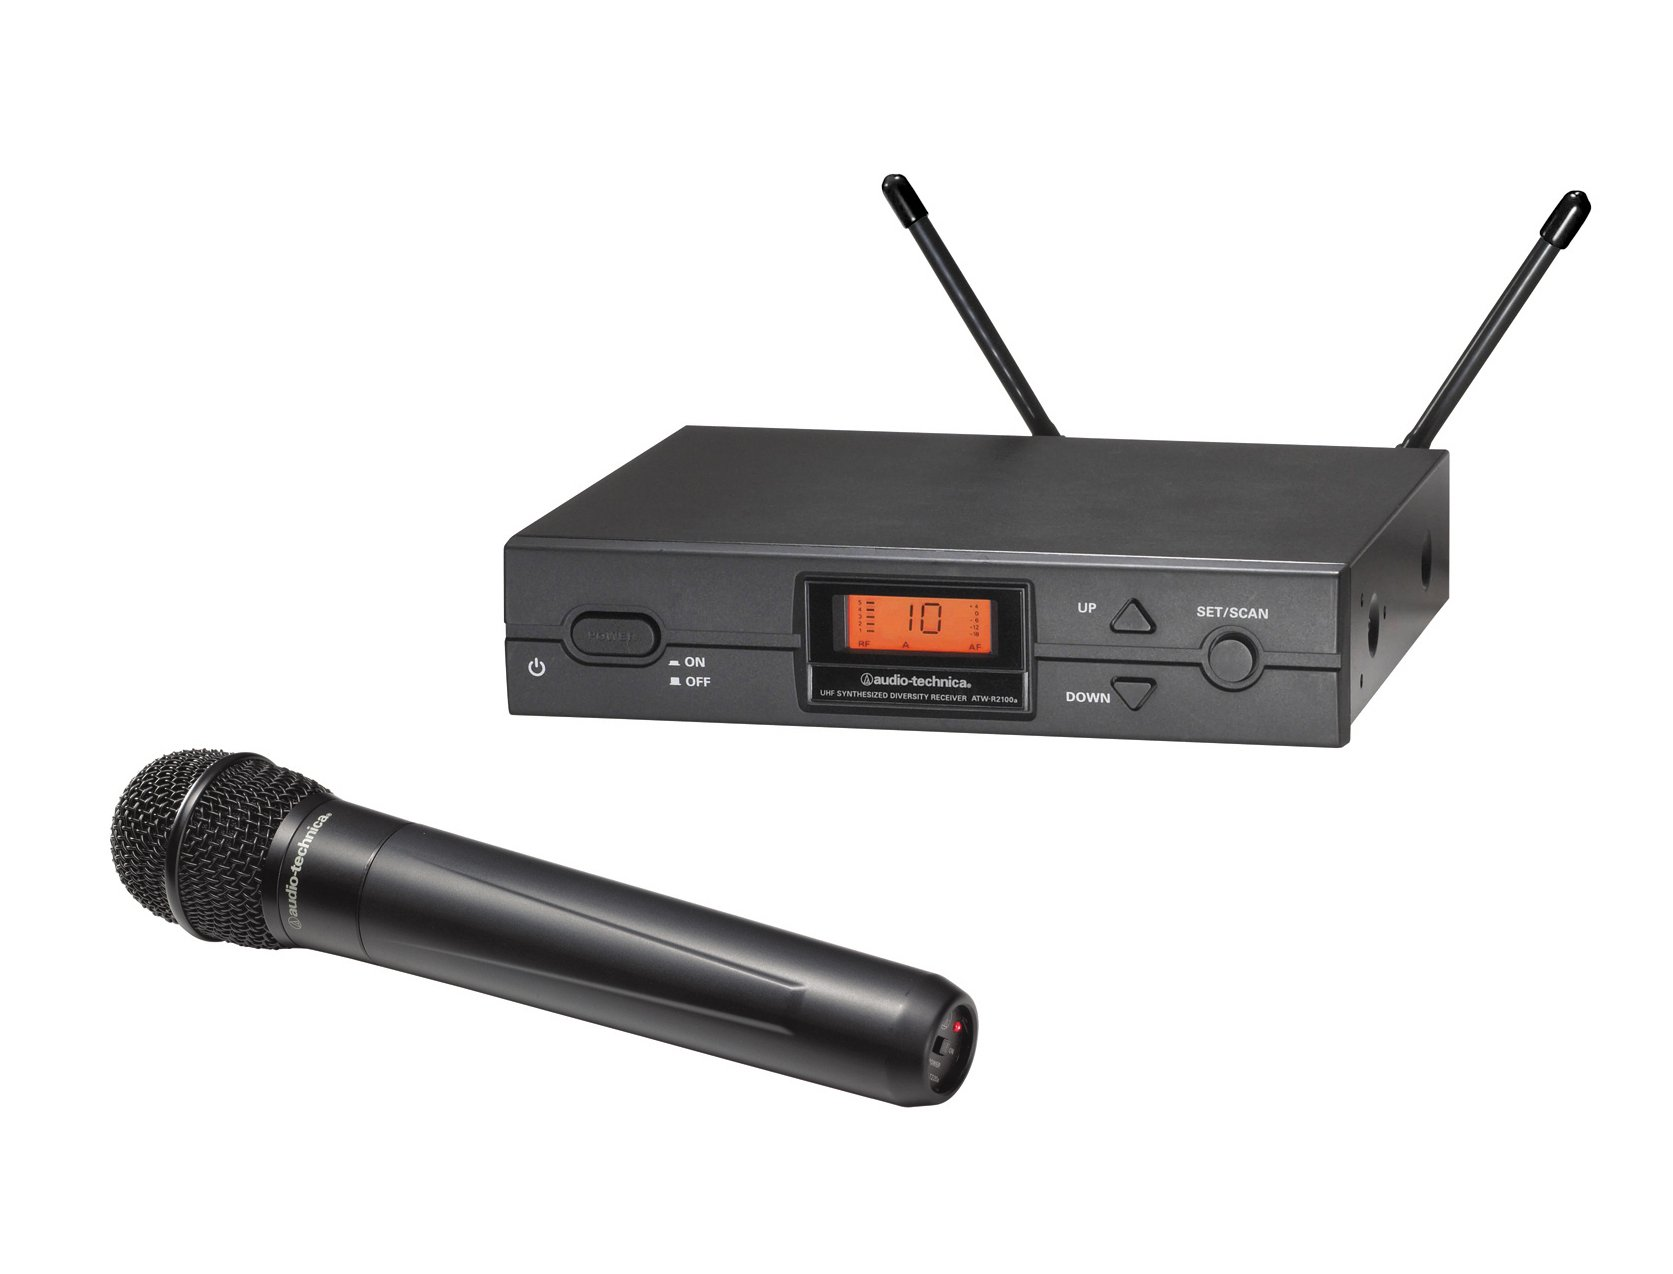 Wireless Handheld Cardioid Dynamic Microphone System, Frequency Band: I